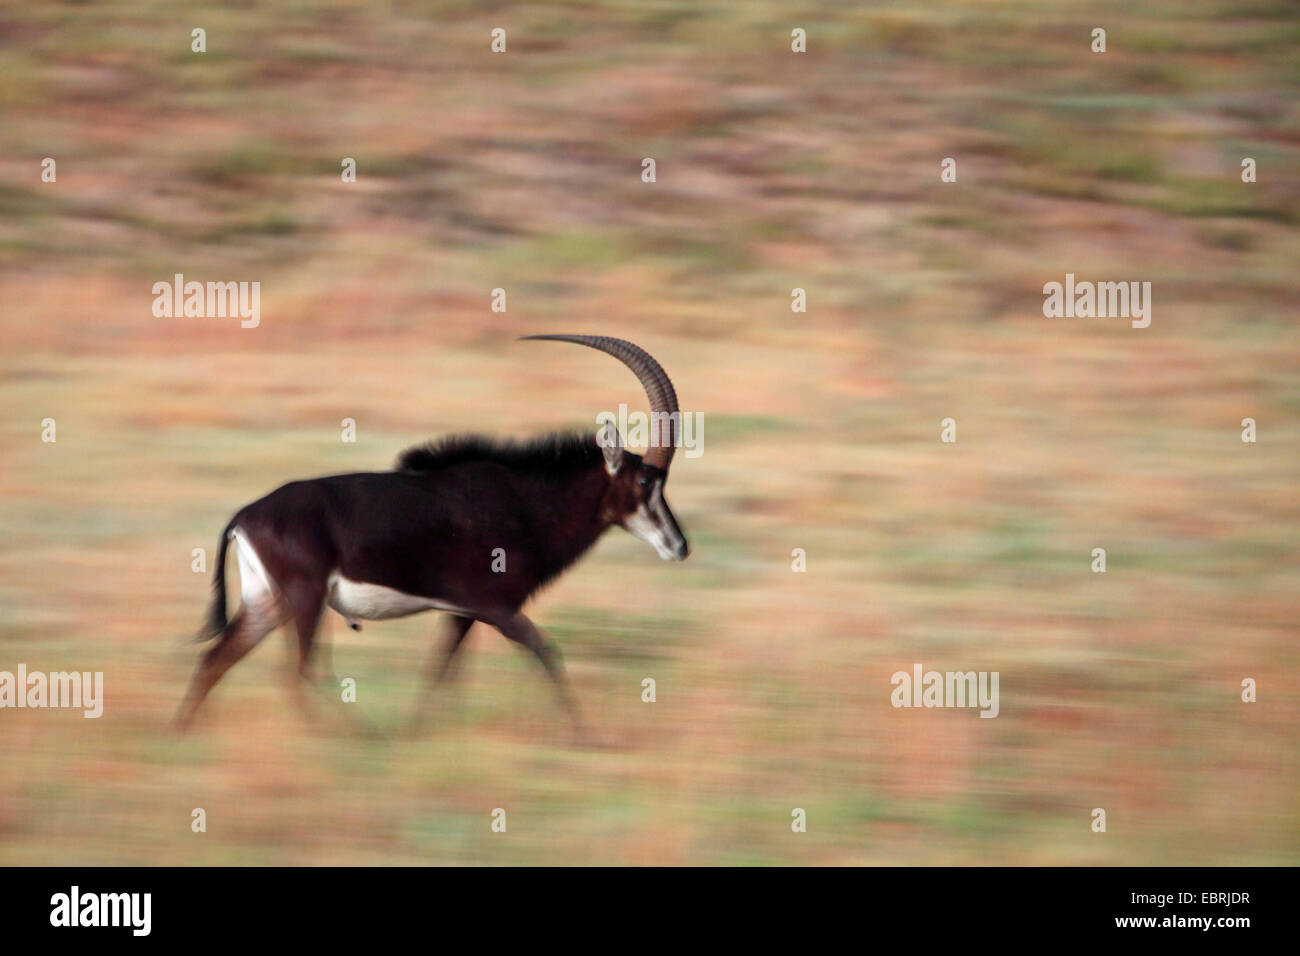 South African Sable Antelope (Hippotragus niger niger), running male, South Africa, Kgaswane Mountain Reserve - Stock Image